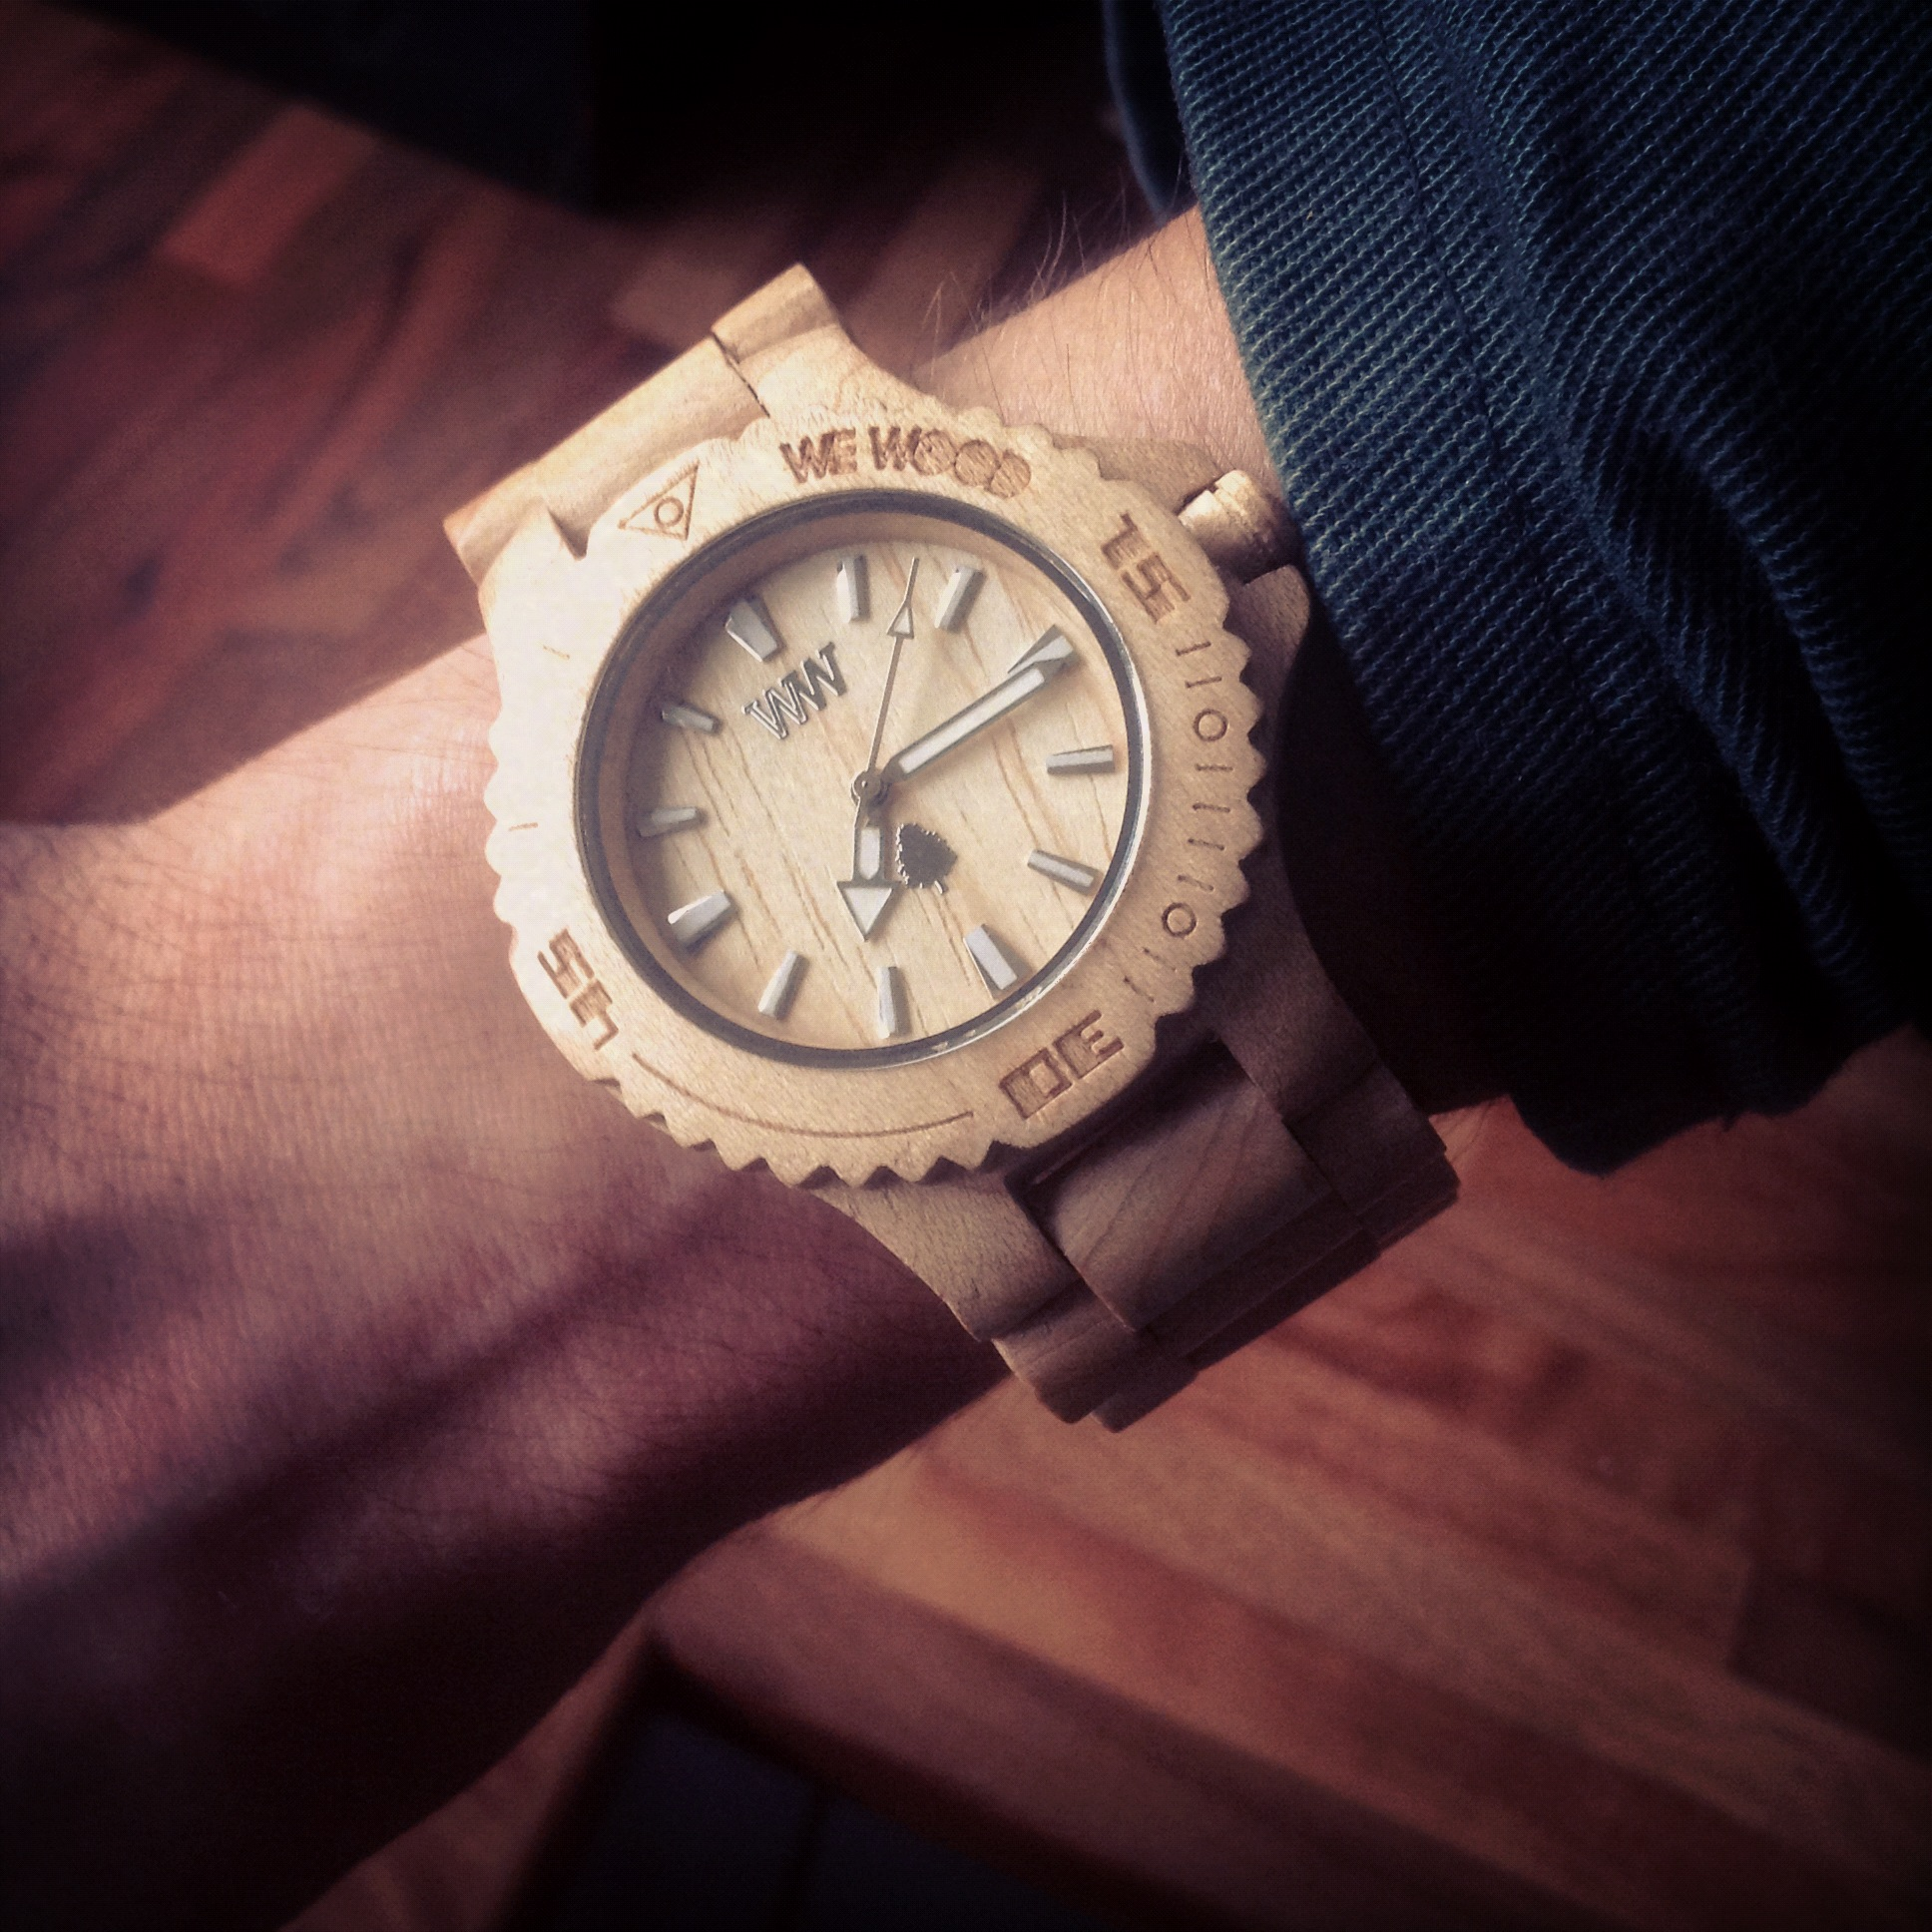 Wewood Wooden Watches Australia Plans Diy How To Make